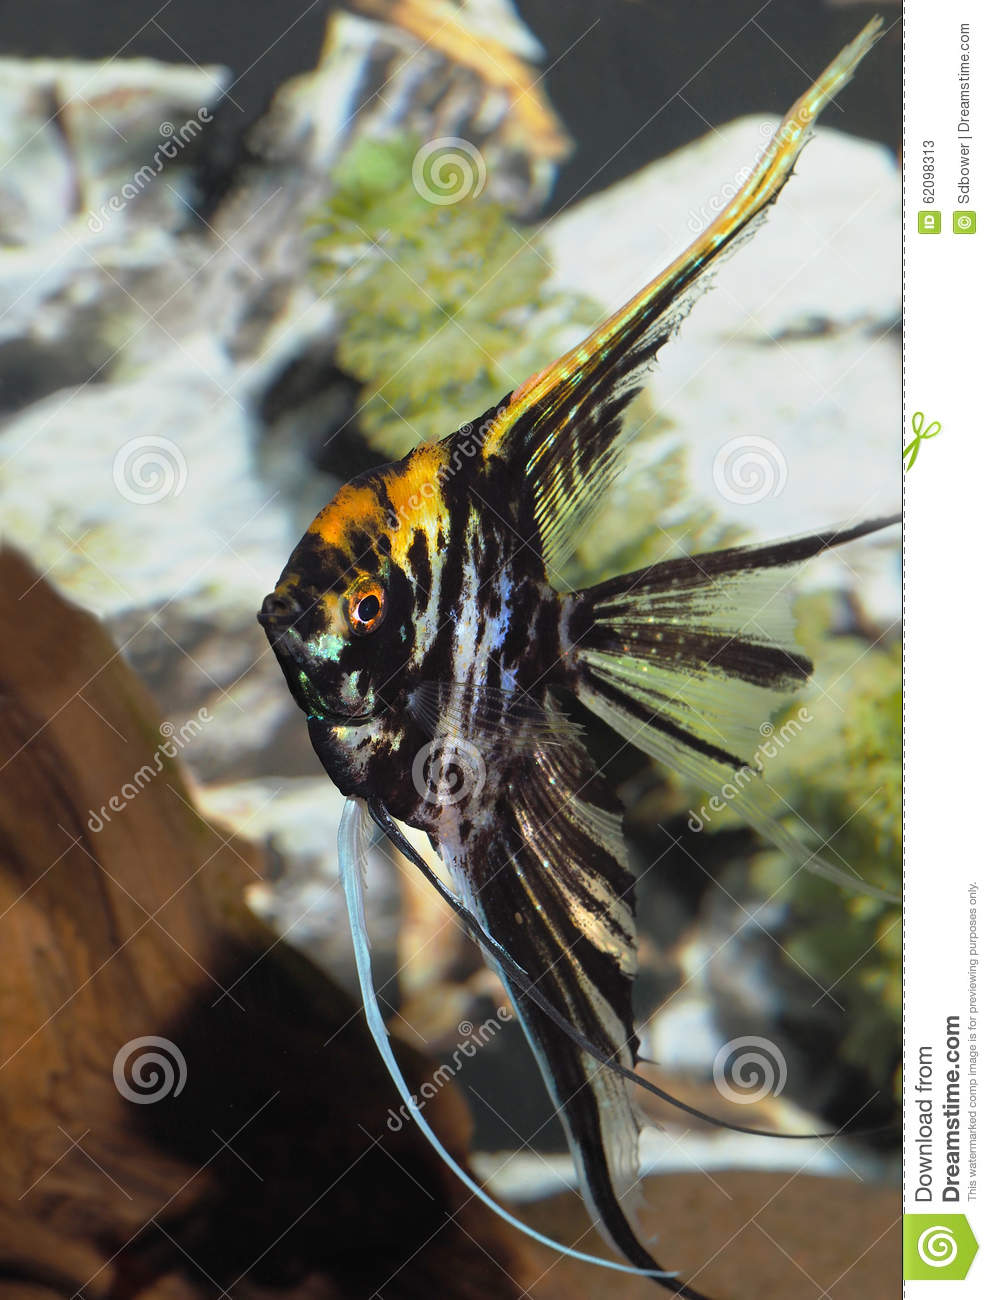 Black and yellow freshwater aquarium fish - Black And Yellow Veiled Angel Fish